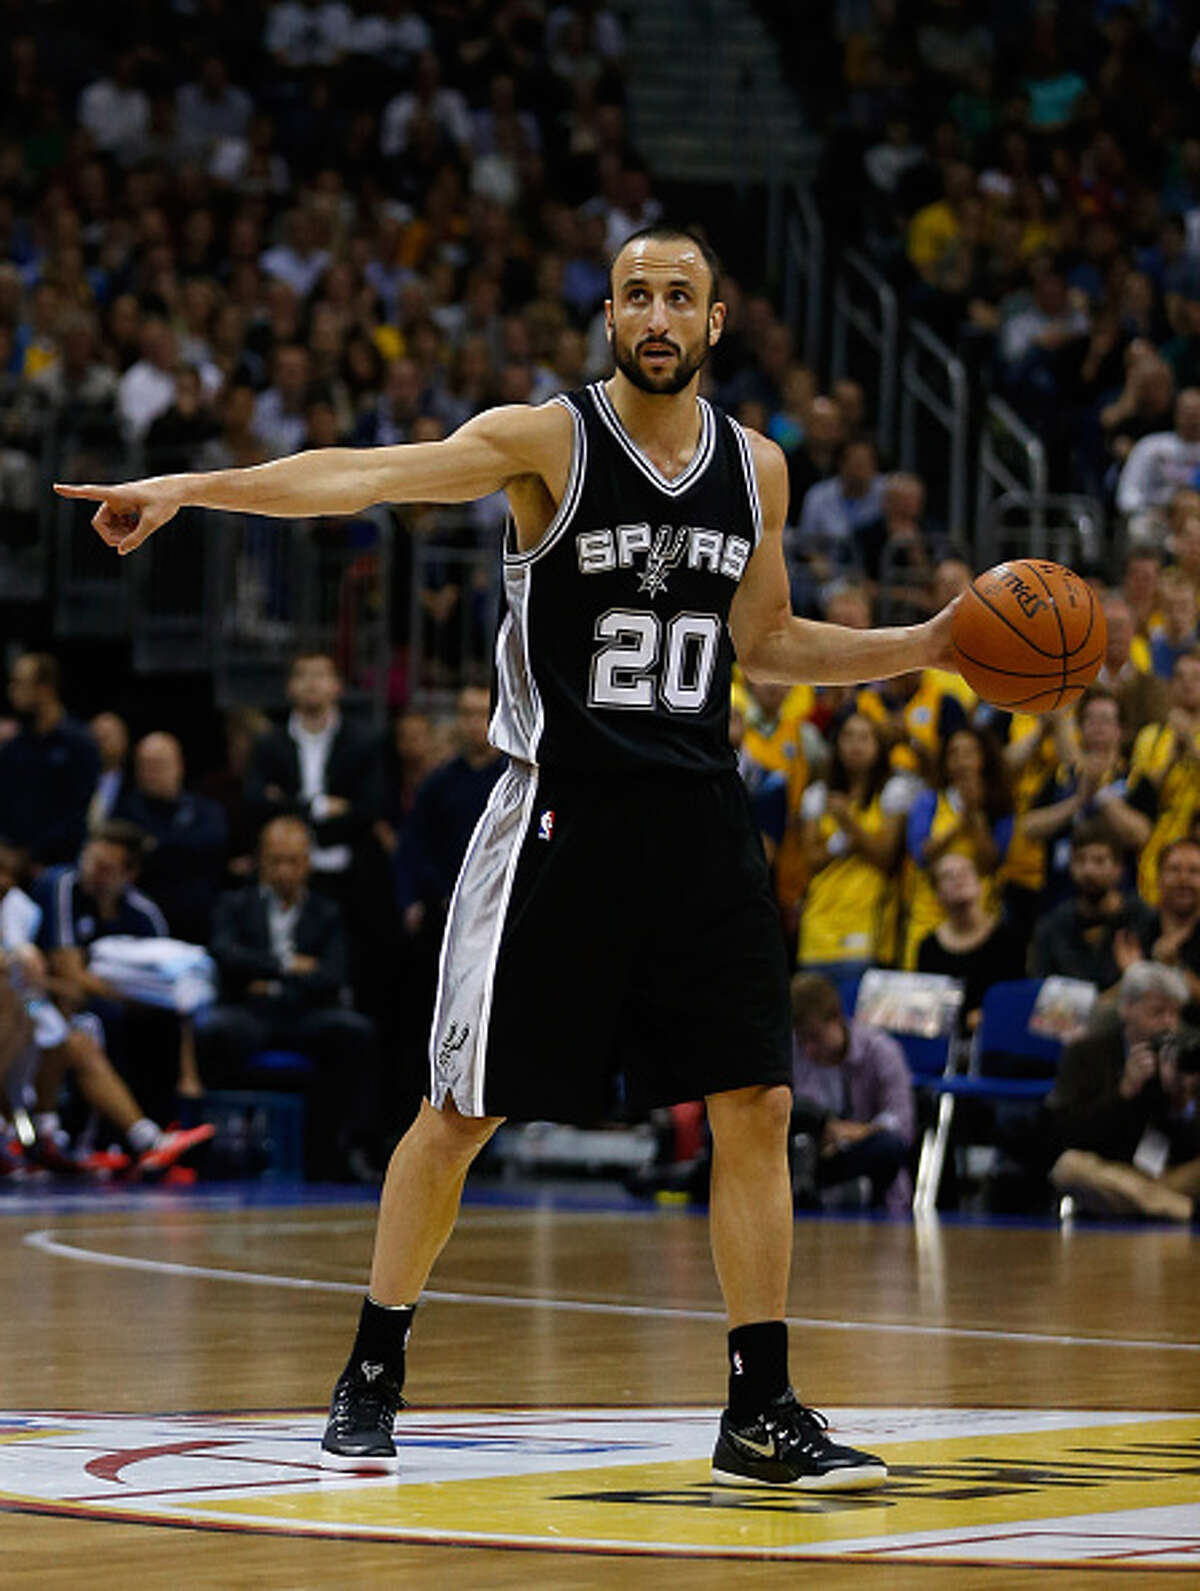 BERLIN, GERMANY - OCTOBER 08: Manu Ginobili of San Antonio in action during the NBA Global Games Tour 2014 match between Alba Berlin and San Antonio Spurs at O2 World on October 8, 2014 in Berlin, Germany.